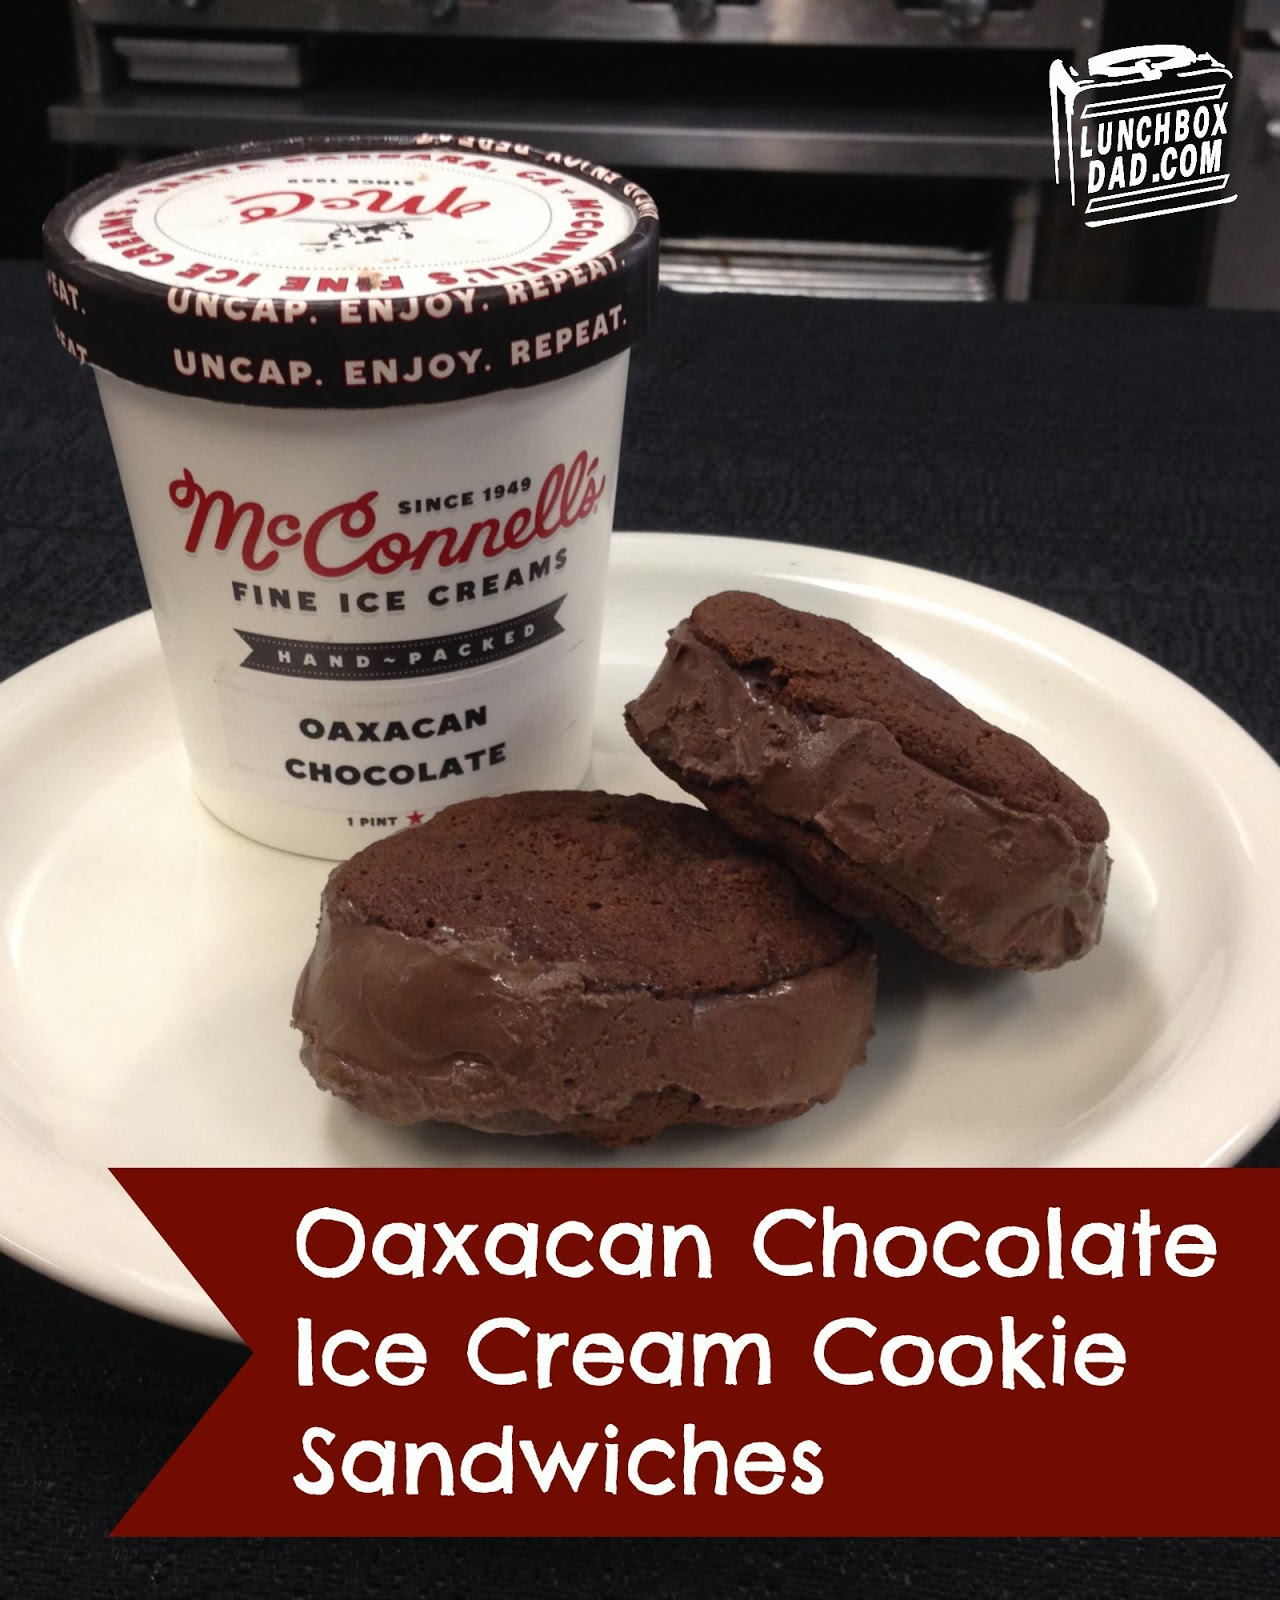 McConnell's Oaxacan Chocolate Ice Cream Cookie Sandwich